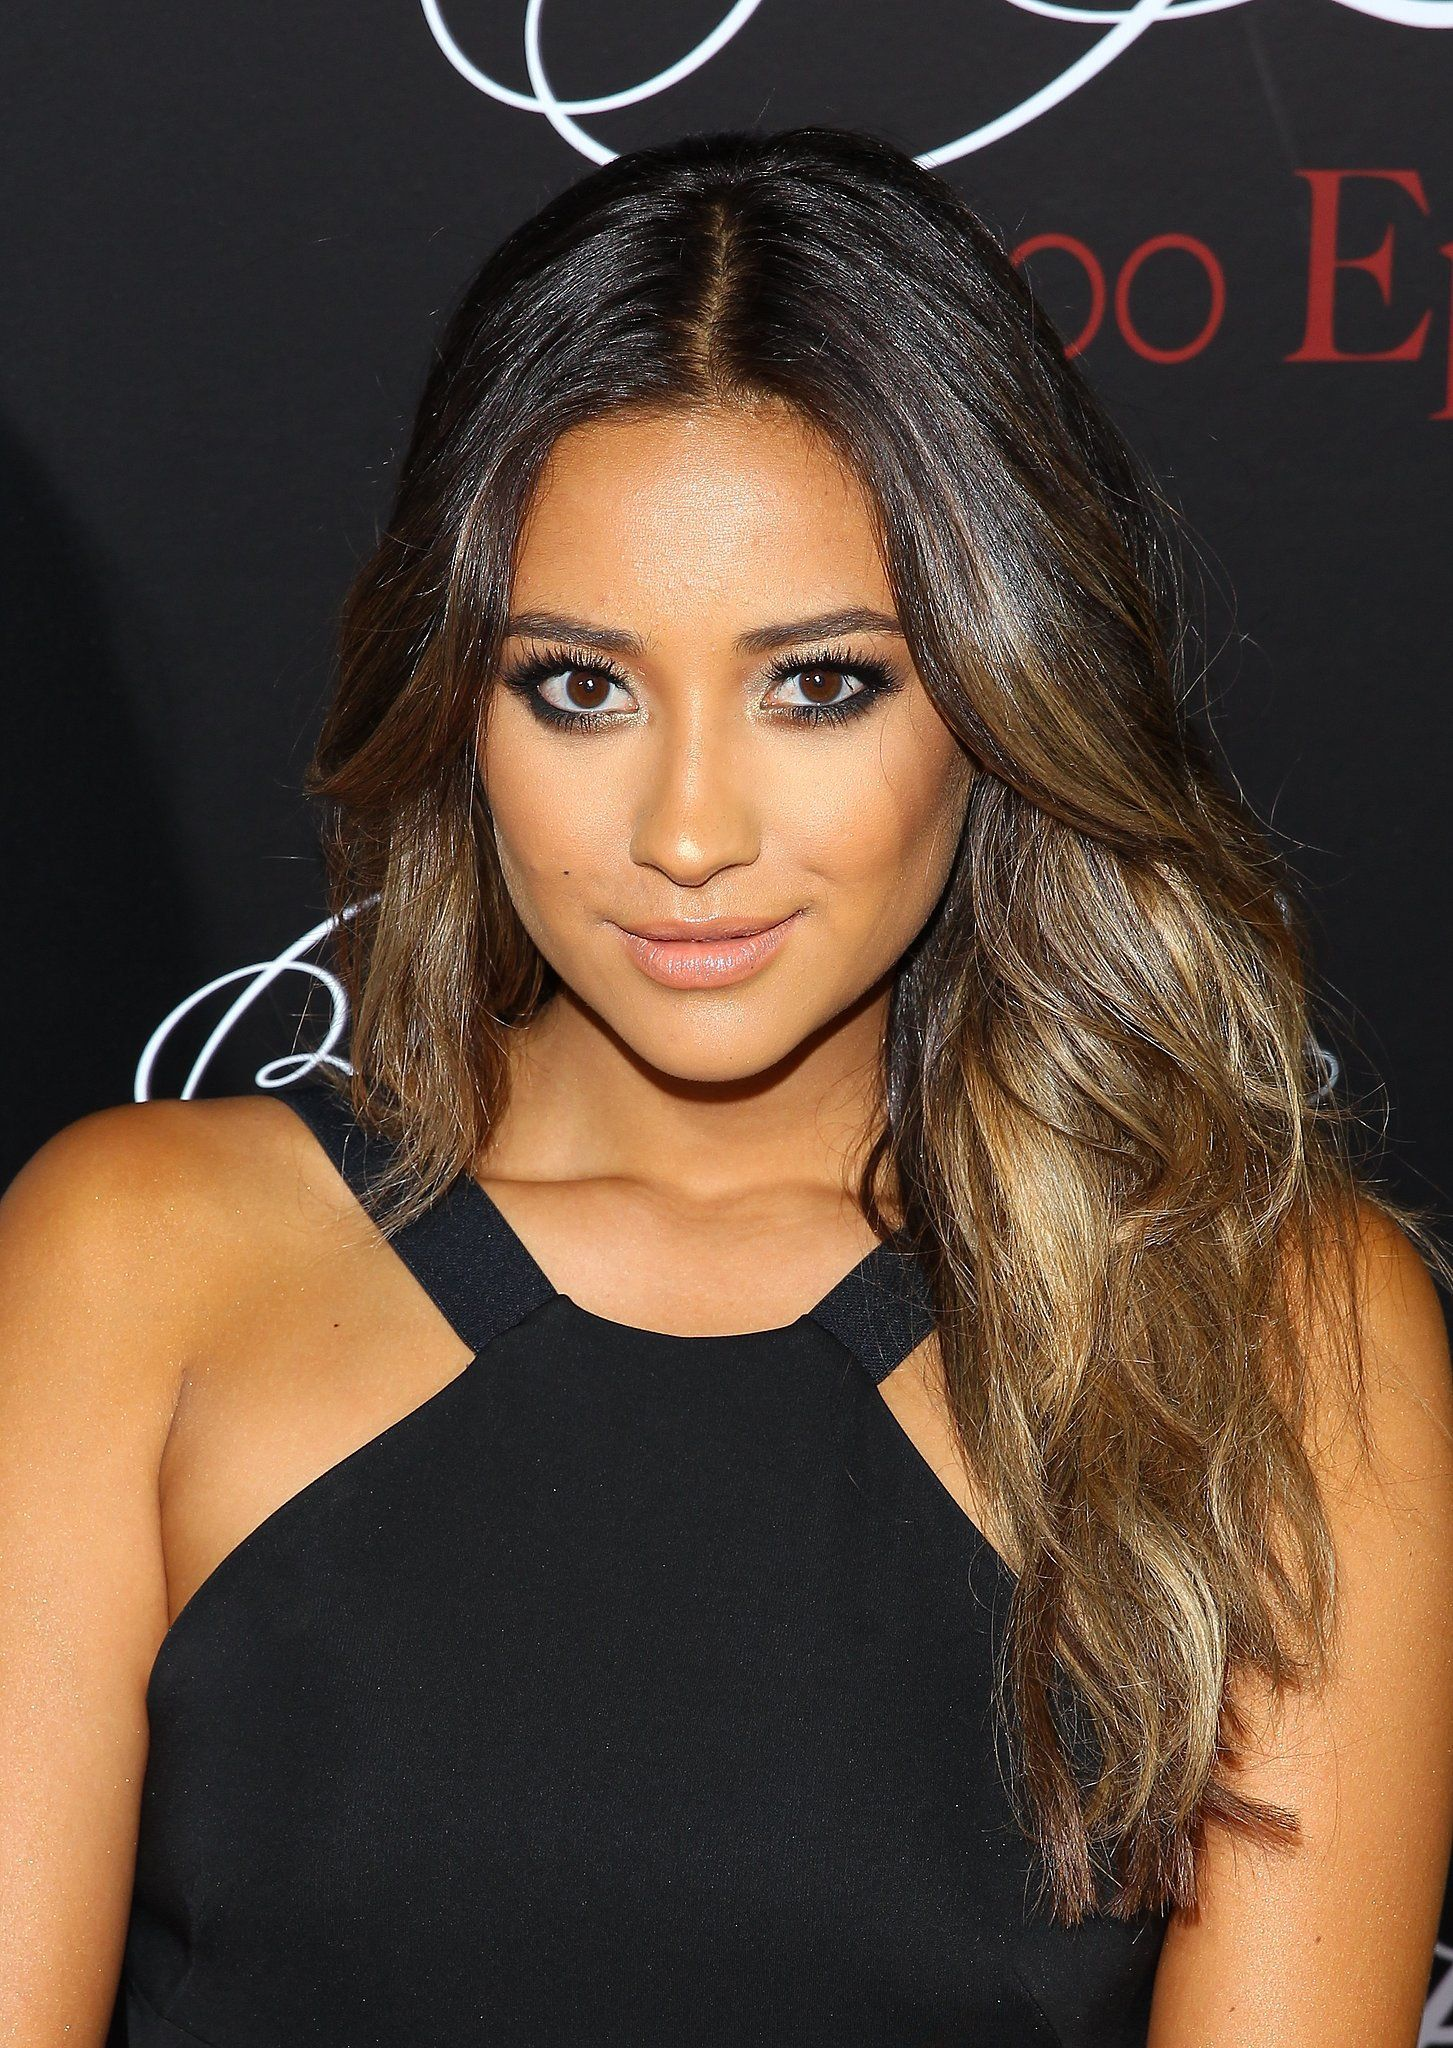 images The 14 Best Shay Mitchell Beauty Moments Ever